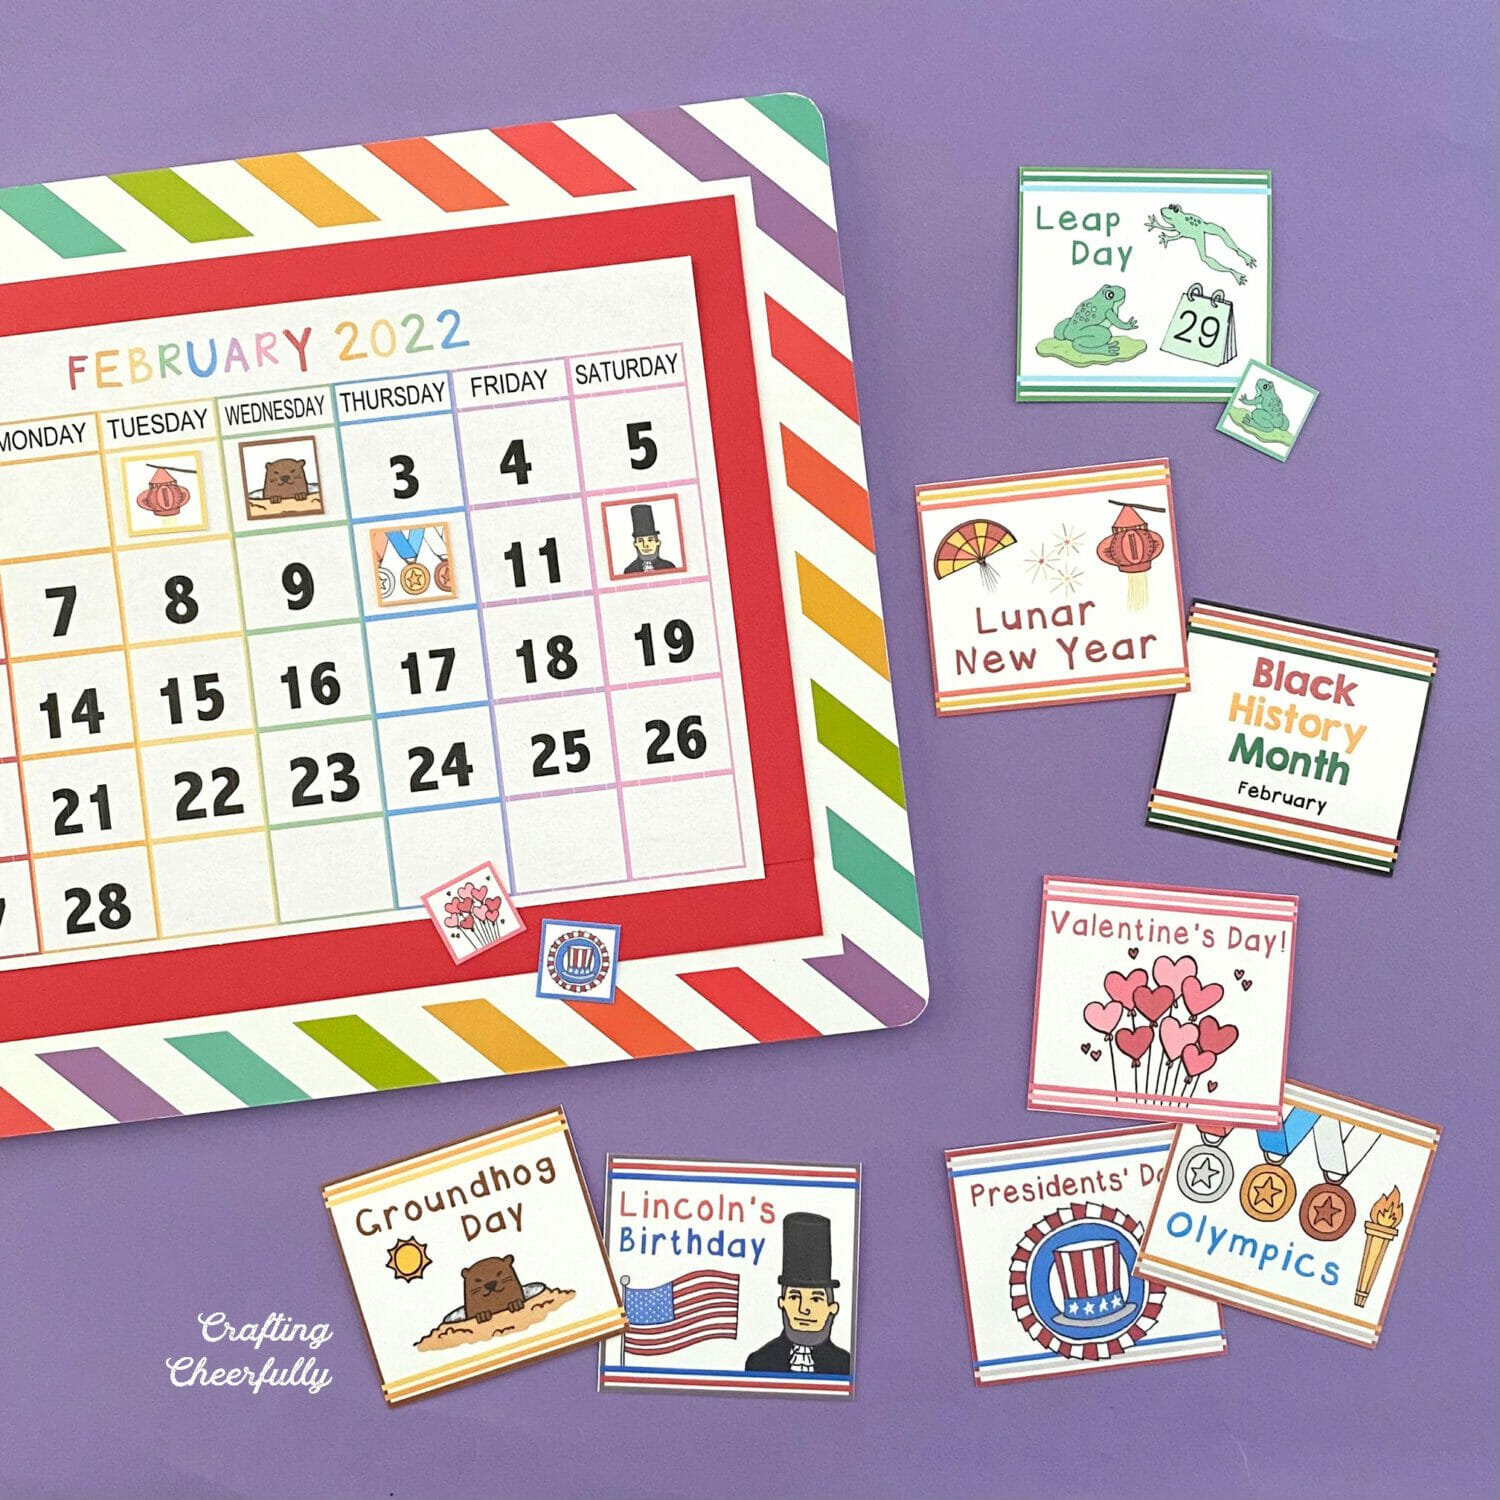 Holiday cards for February on a colorful and bright calendar board.